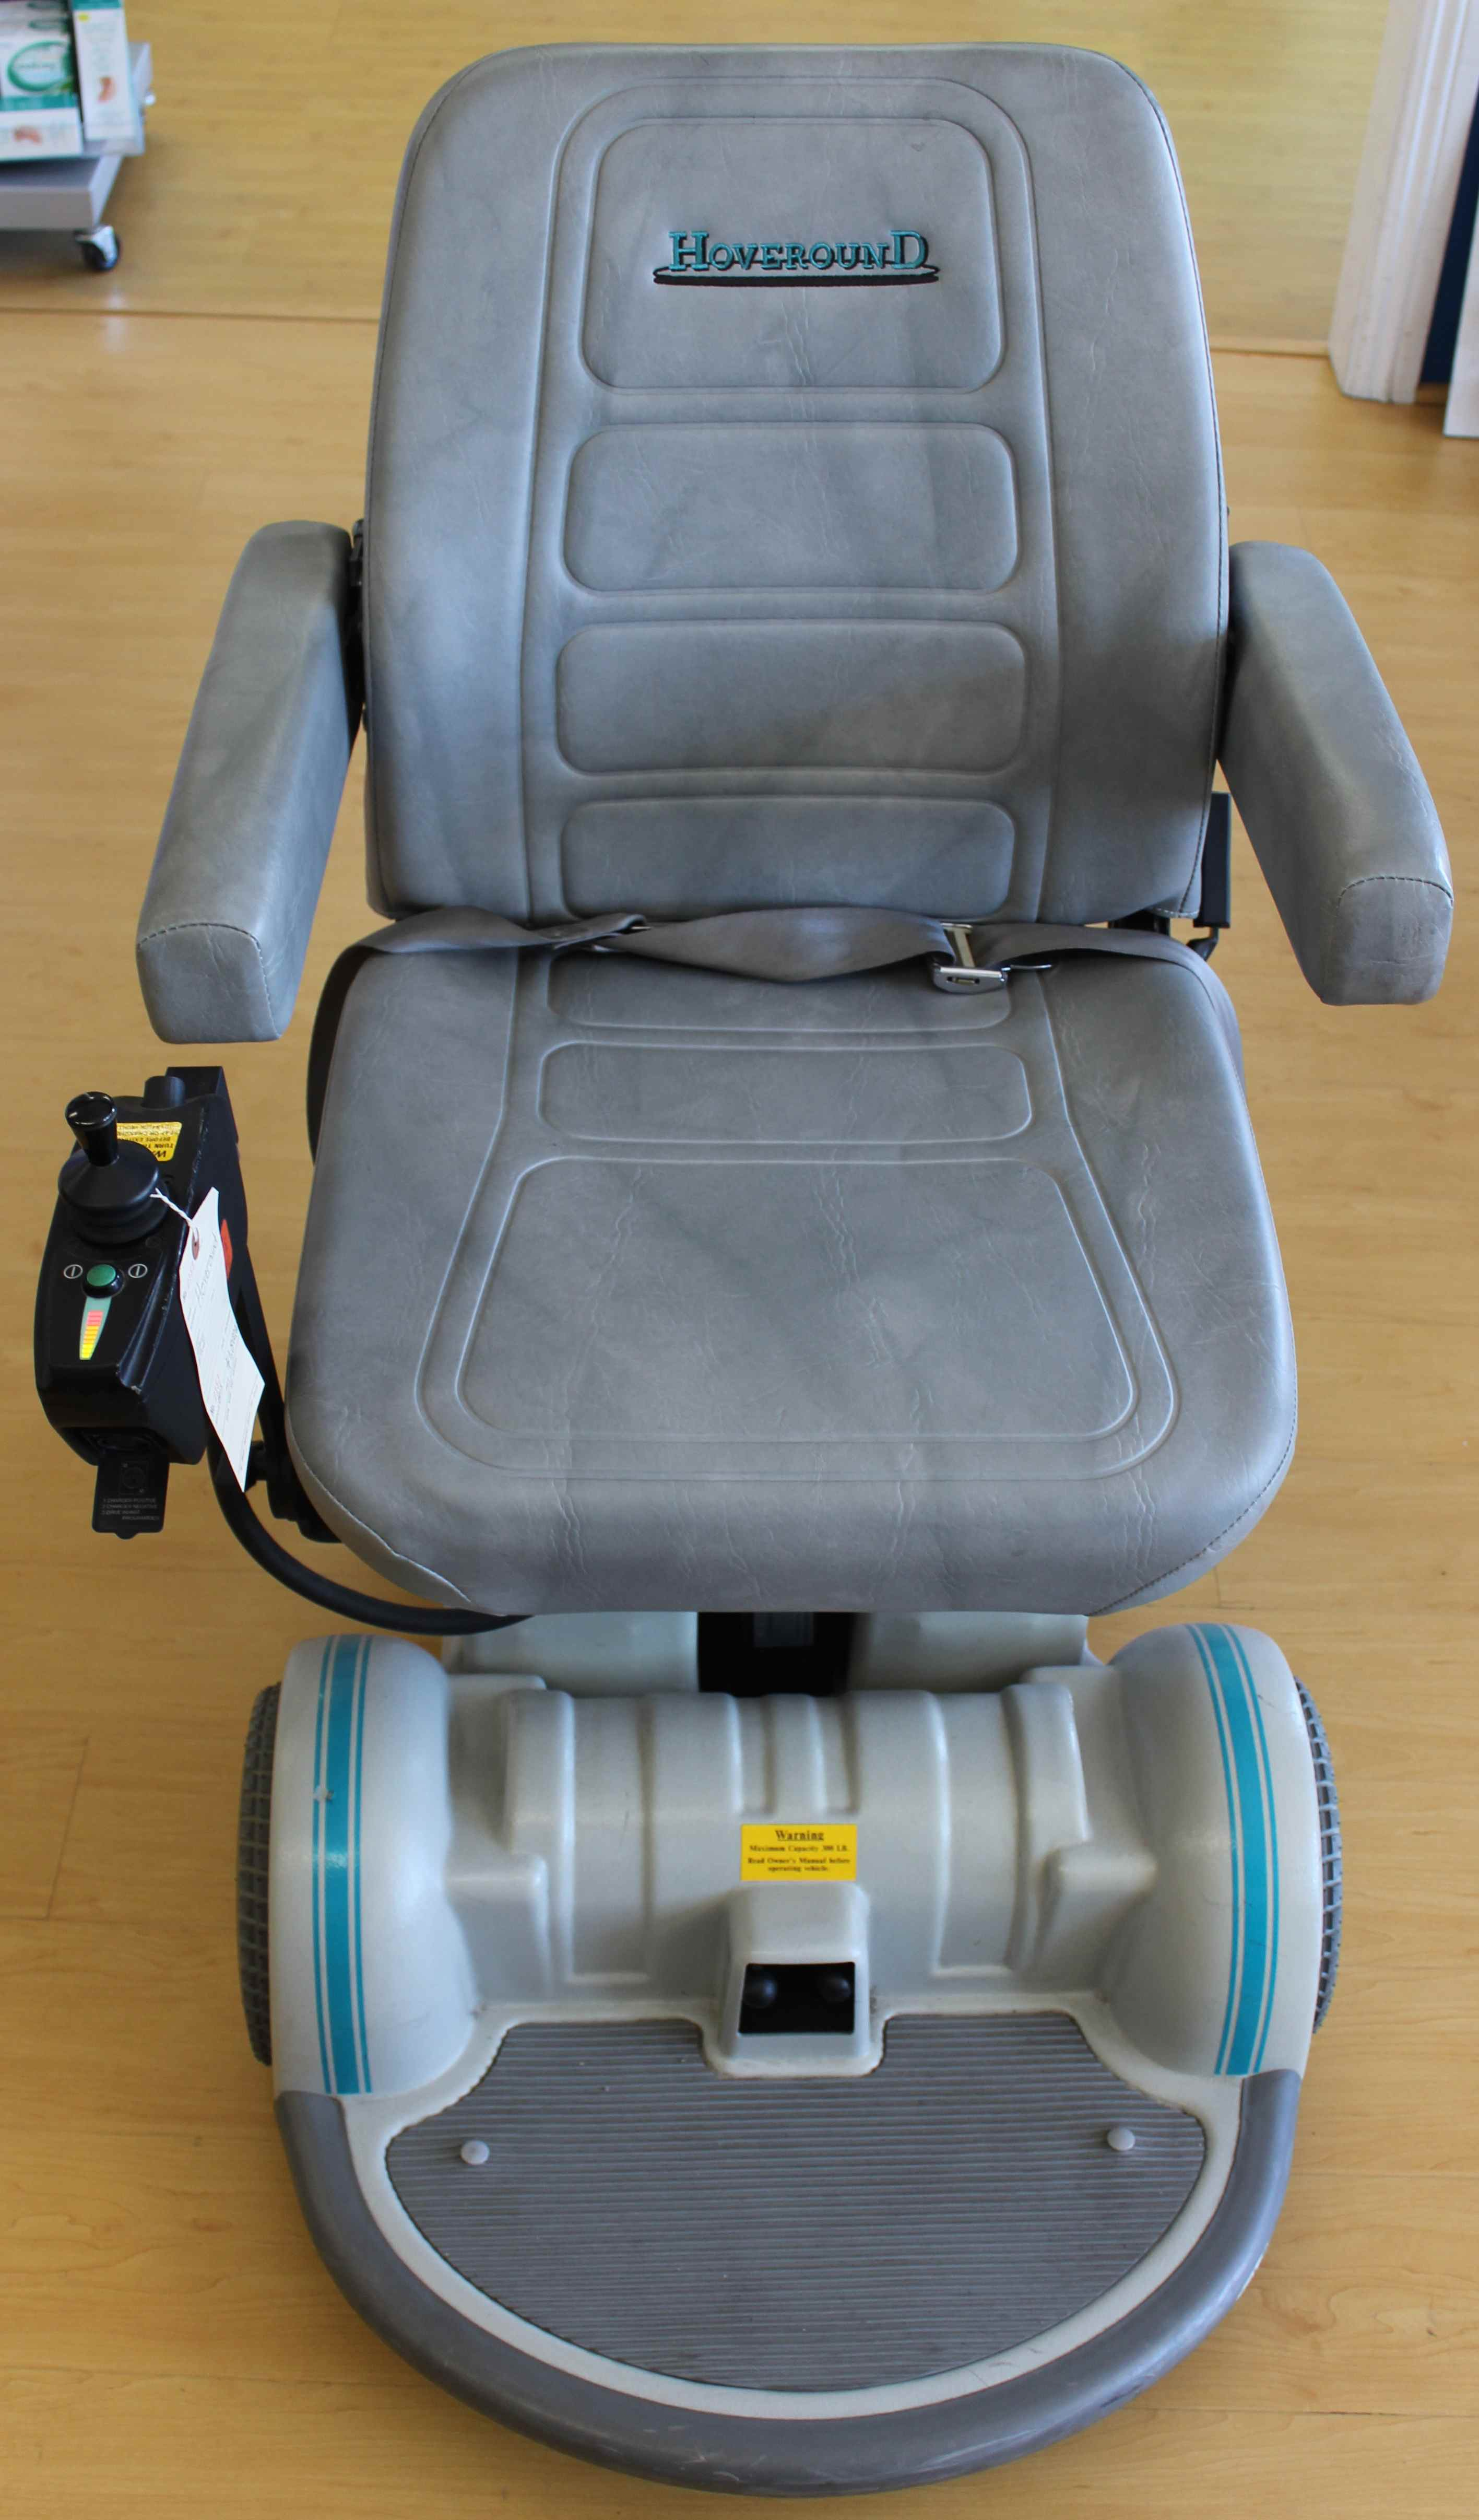 Hoveround Power Wheelchair Rentals u0026 Delivery | Los Angeles | South Bay | Long Beach ... & Used Medical Supplies u0026 Devices | Previously Owned | Wheelchairs ...